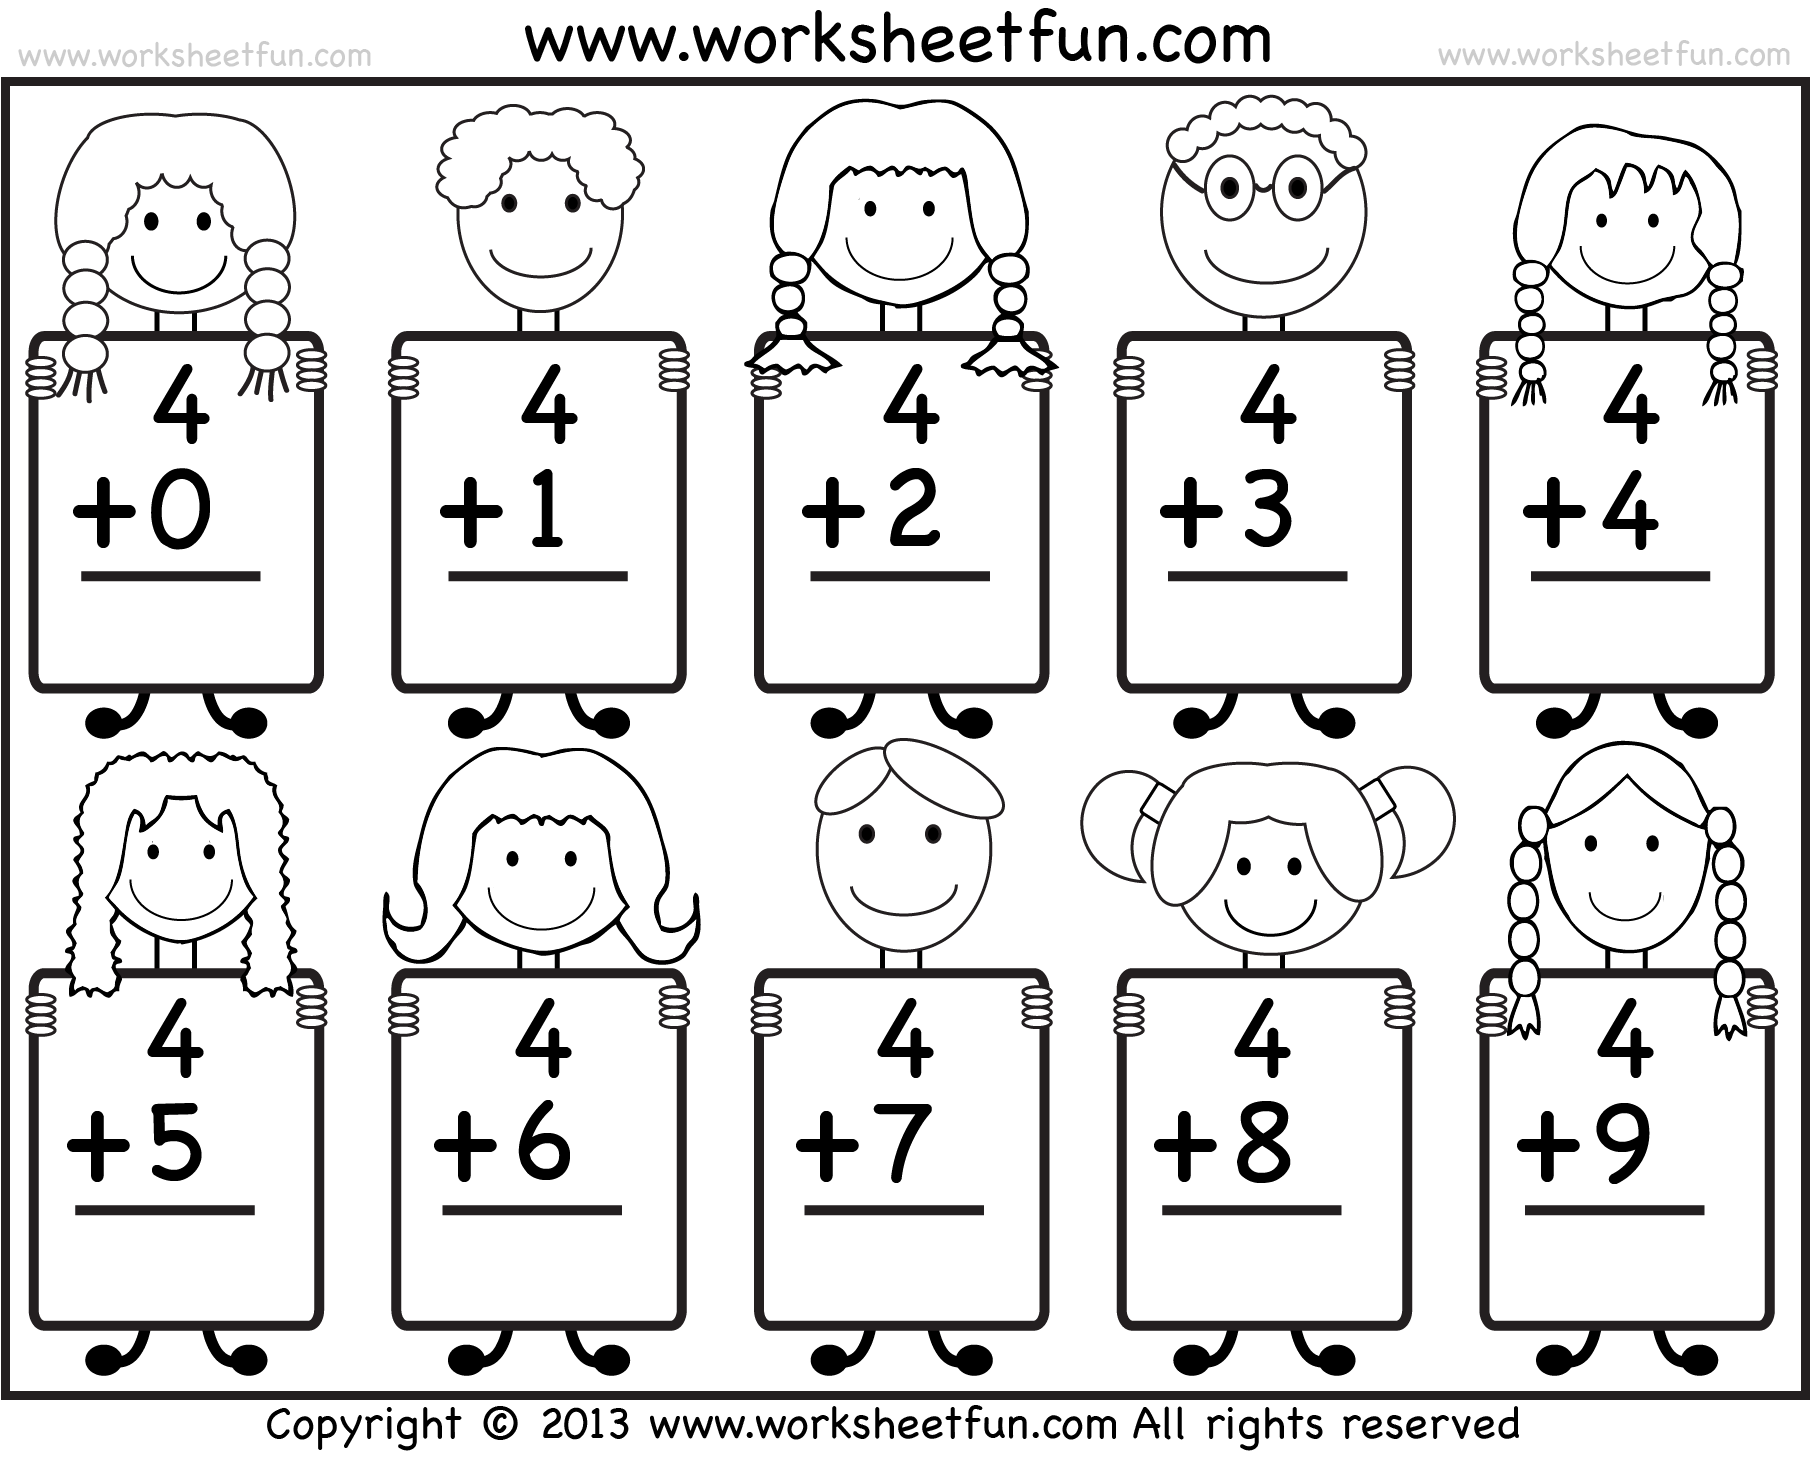 Printable Math Worksheets For Kindergarten Addition Worksheet – Addition Worksheets for Preschoolers